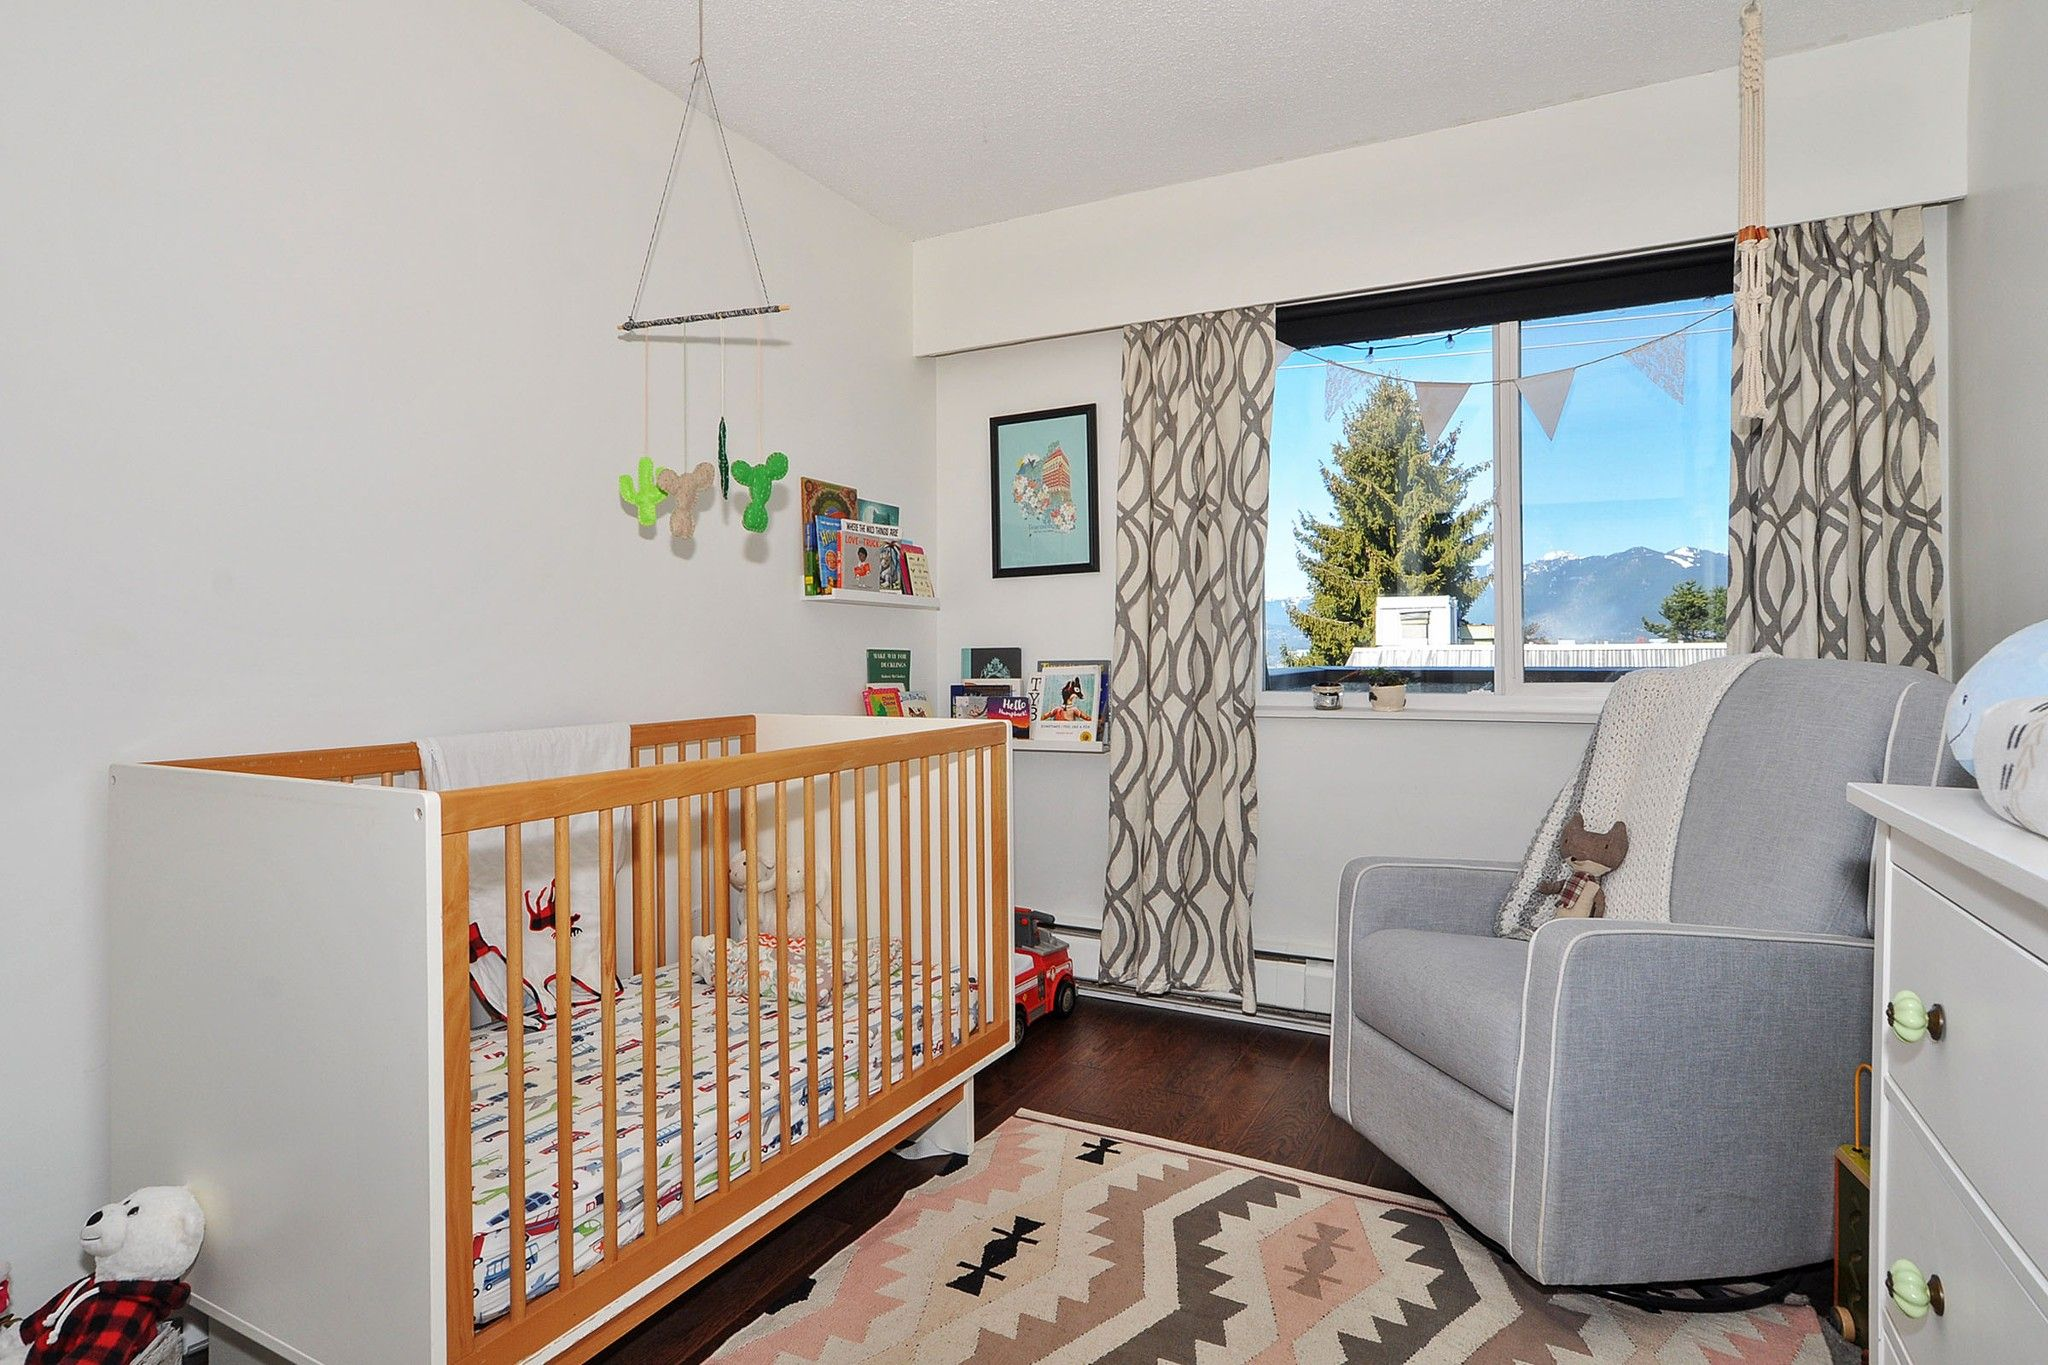 """Photo 12: Photos: 302 391 E 7TH Avenue in Vancouver: Mount Pleasant VE Condo for sale in """"OAKWOOD PARK"""" (Vancouver East)  : MLS®# R2352076"""